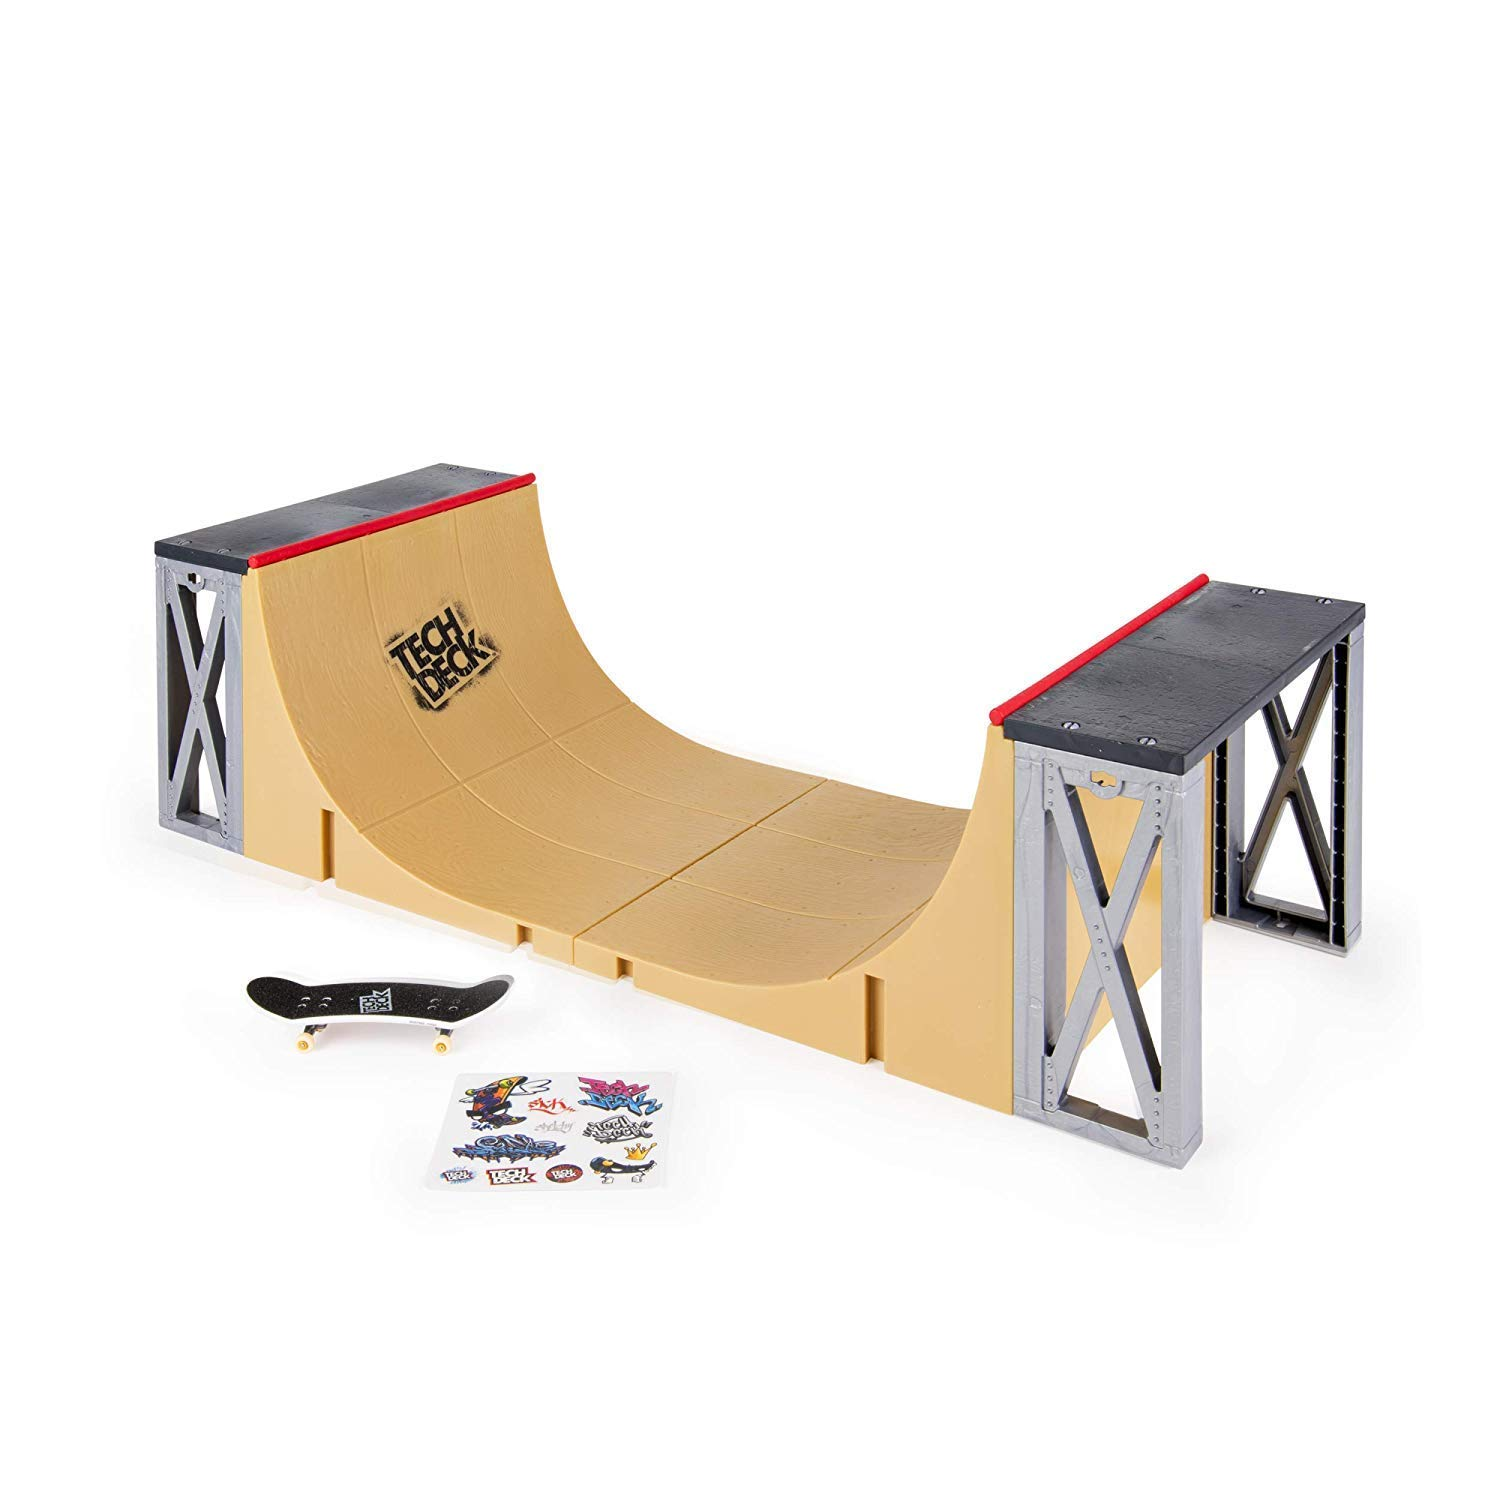 Tech Deck - Ultimate Half-Pipe Ramp and Exclusive Primitive Pro Model Finger Board, for Ages 6 and Up by Tech Deck (Image #4)